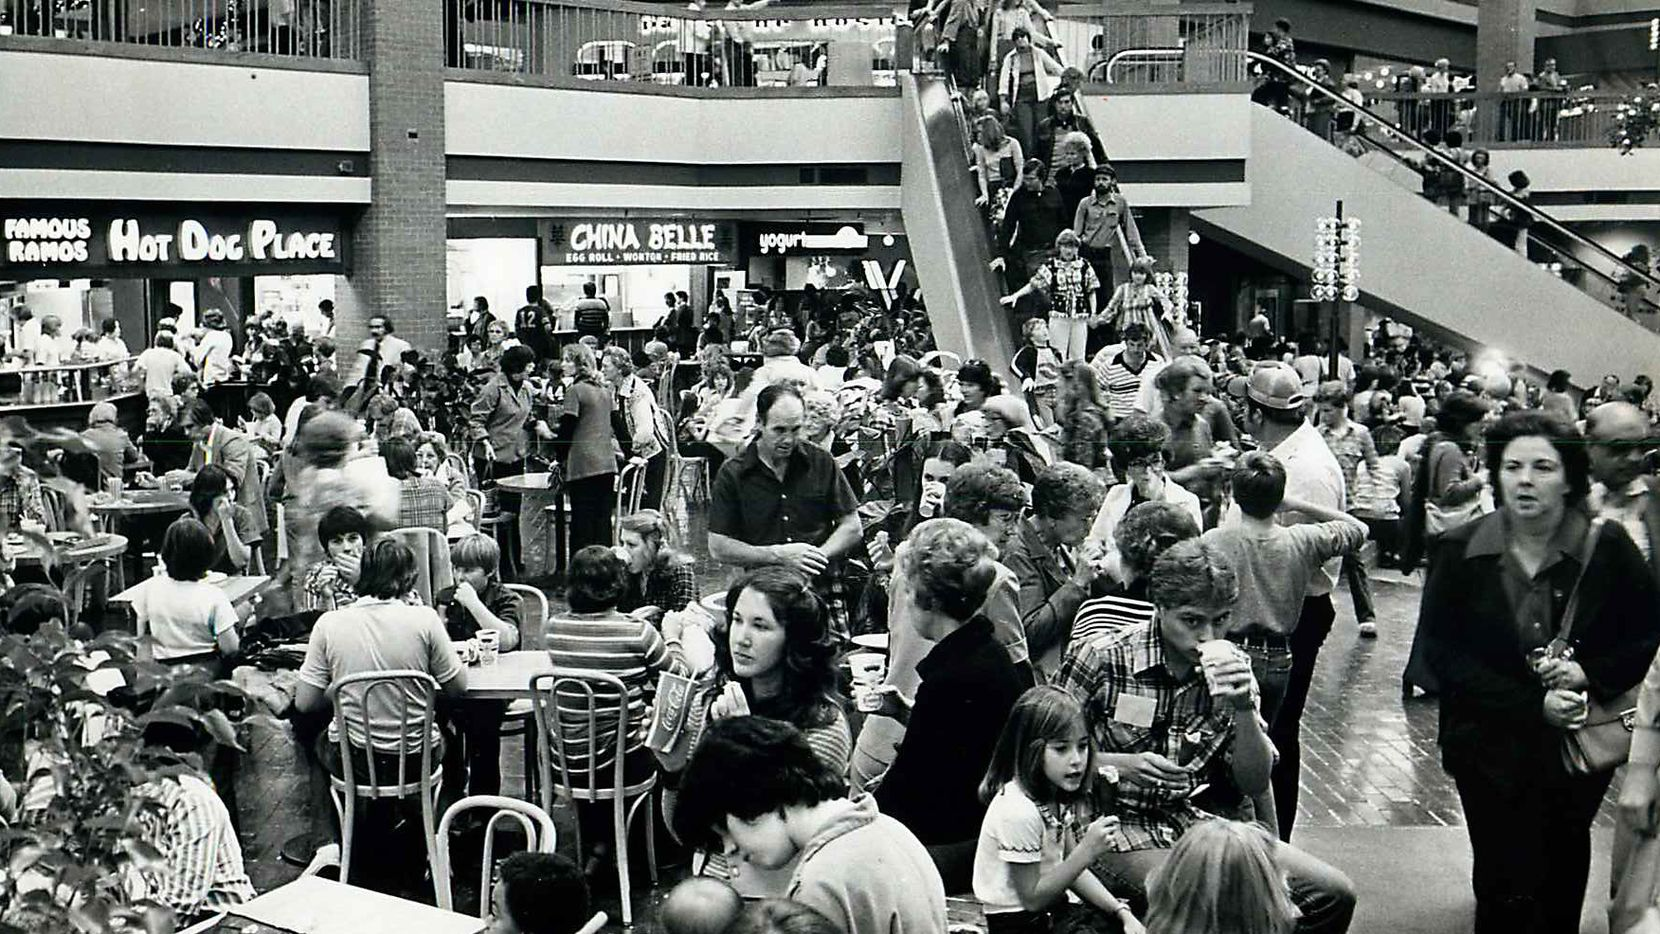 Shot November 24, 1978 - PUBLISHED November 25, 1978 - Shoppers at Valley View Mall pack the shopping center on the first day of the Christmas shopping season.